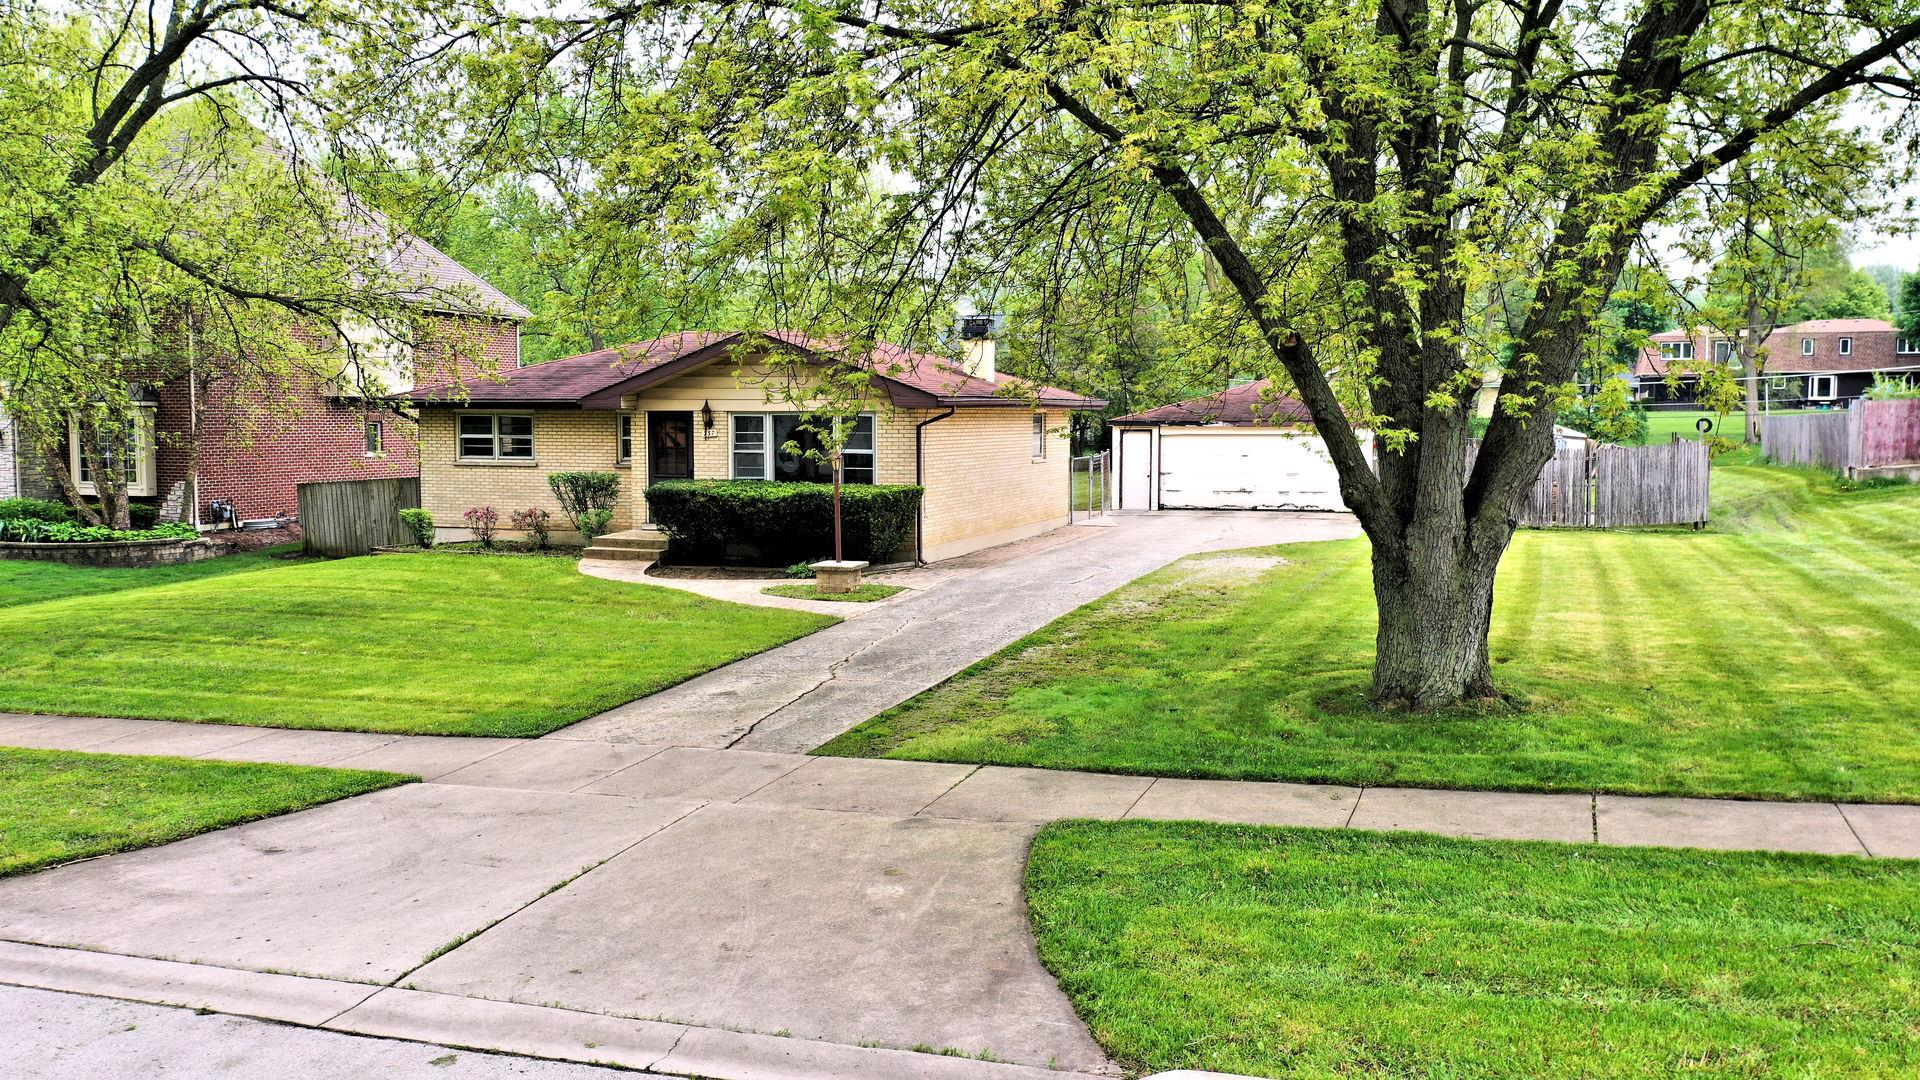 23W737 Maple Avenue, Roselle, IL 60172 - #: 10723811